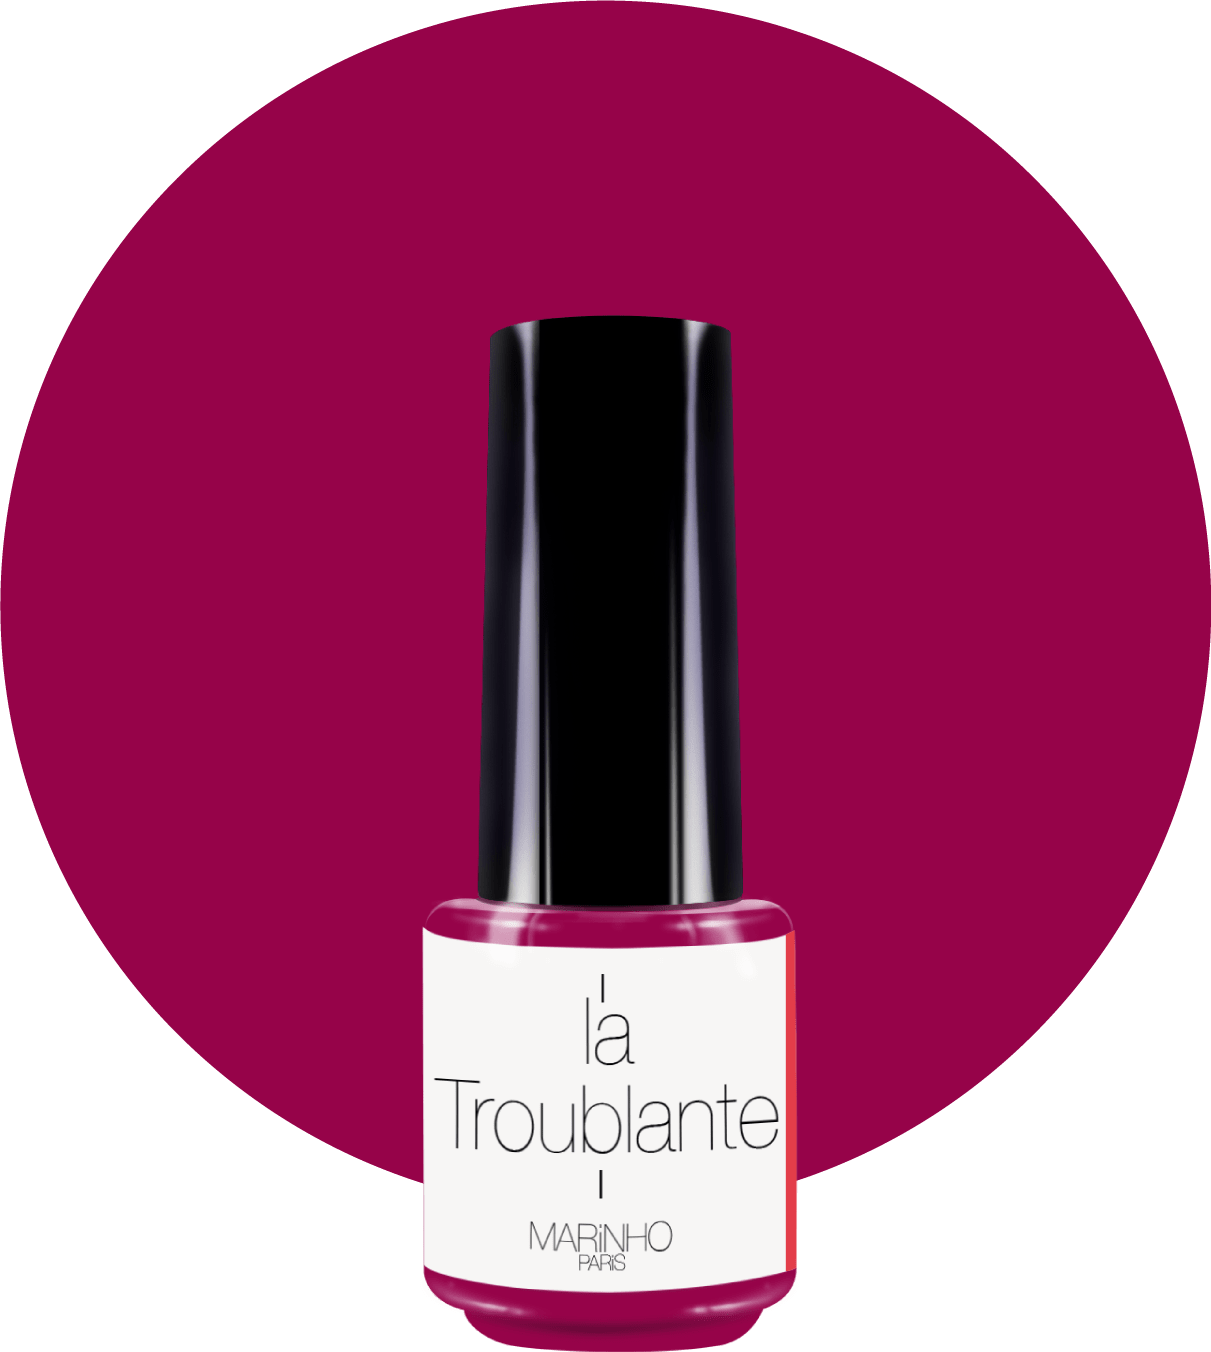 vernis semi-permanent rouge-rose marinho paris sur rond rouge rose